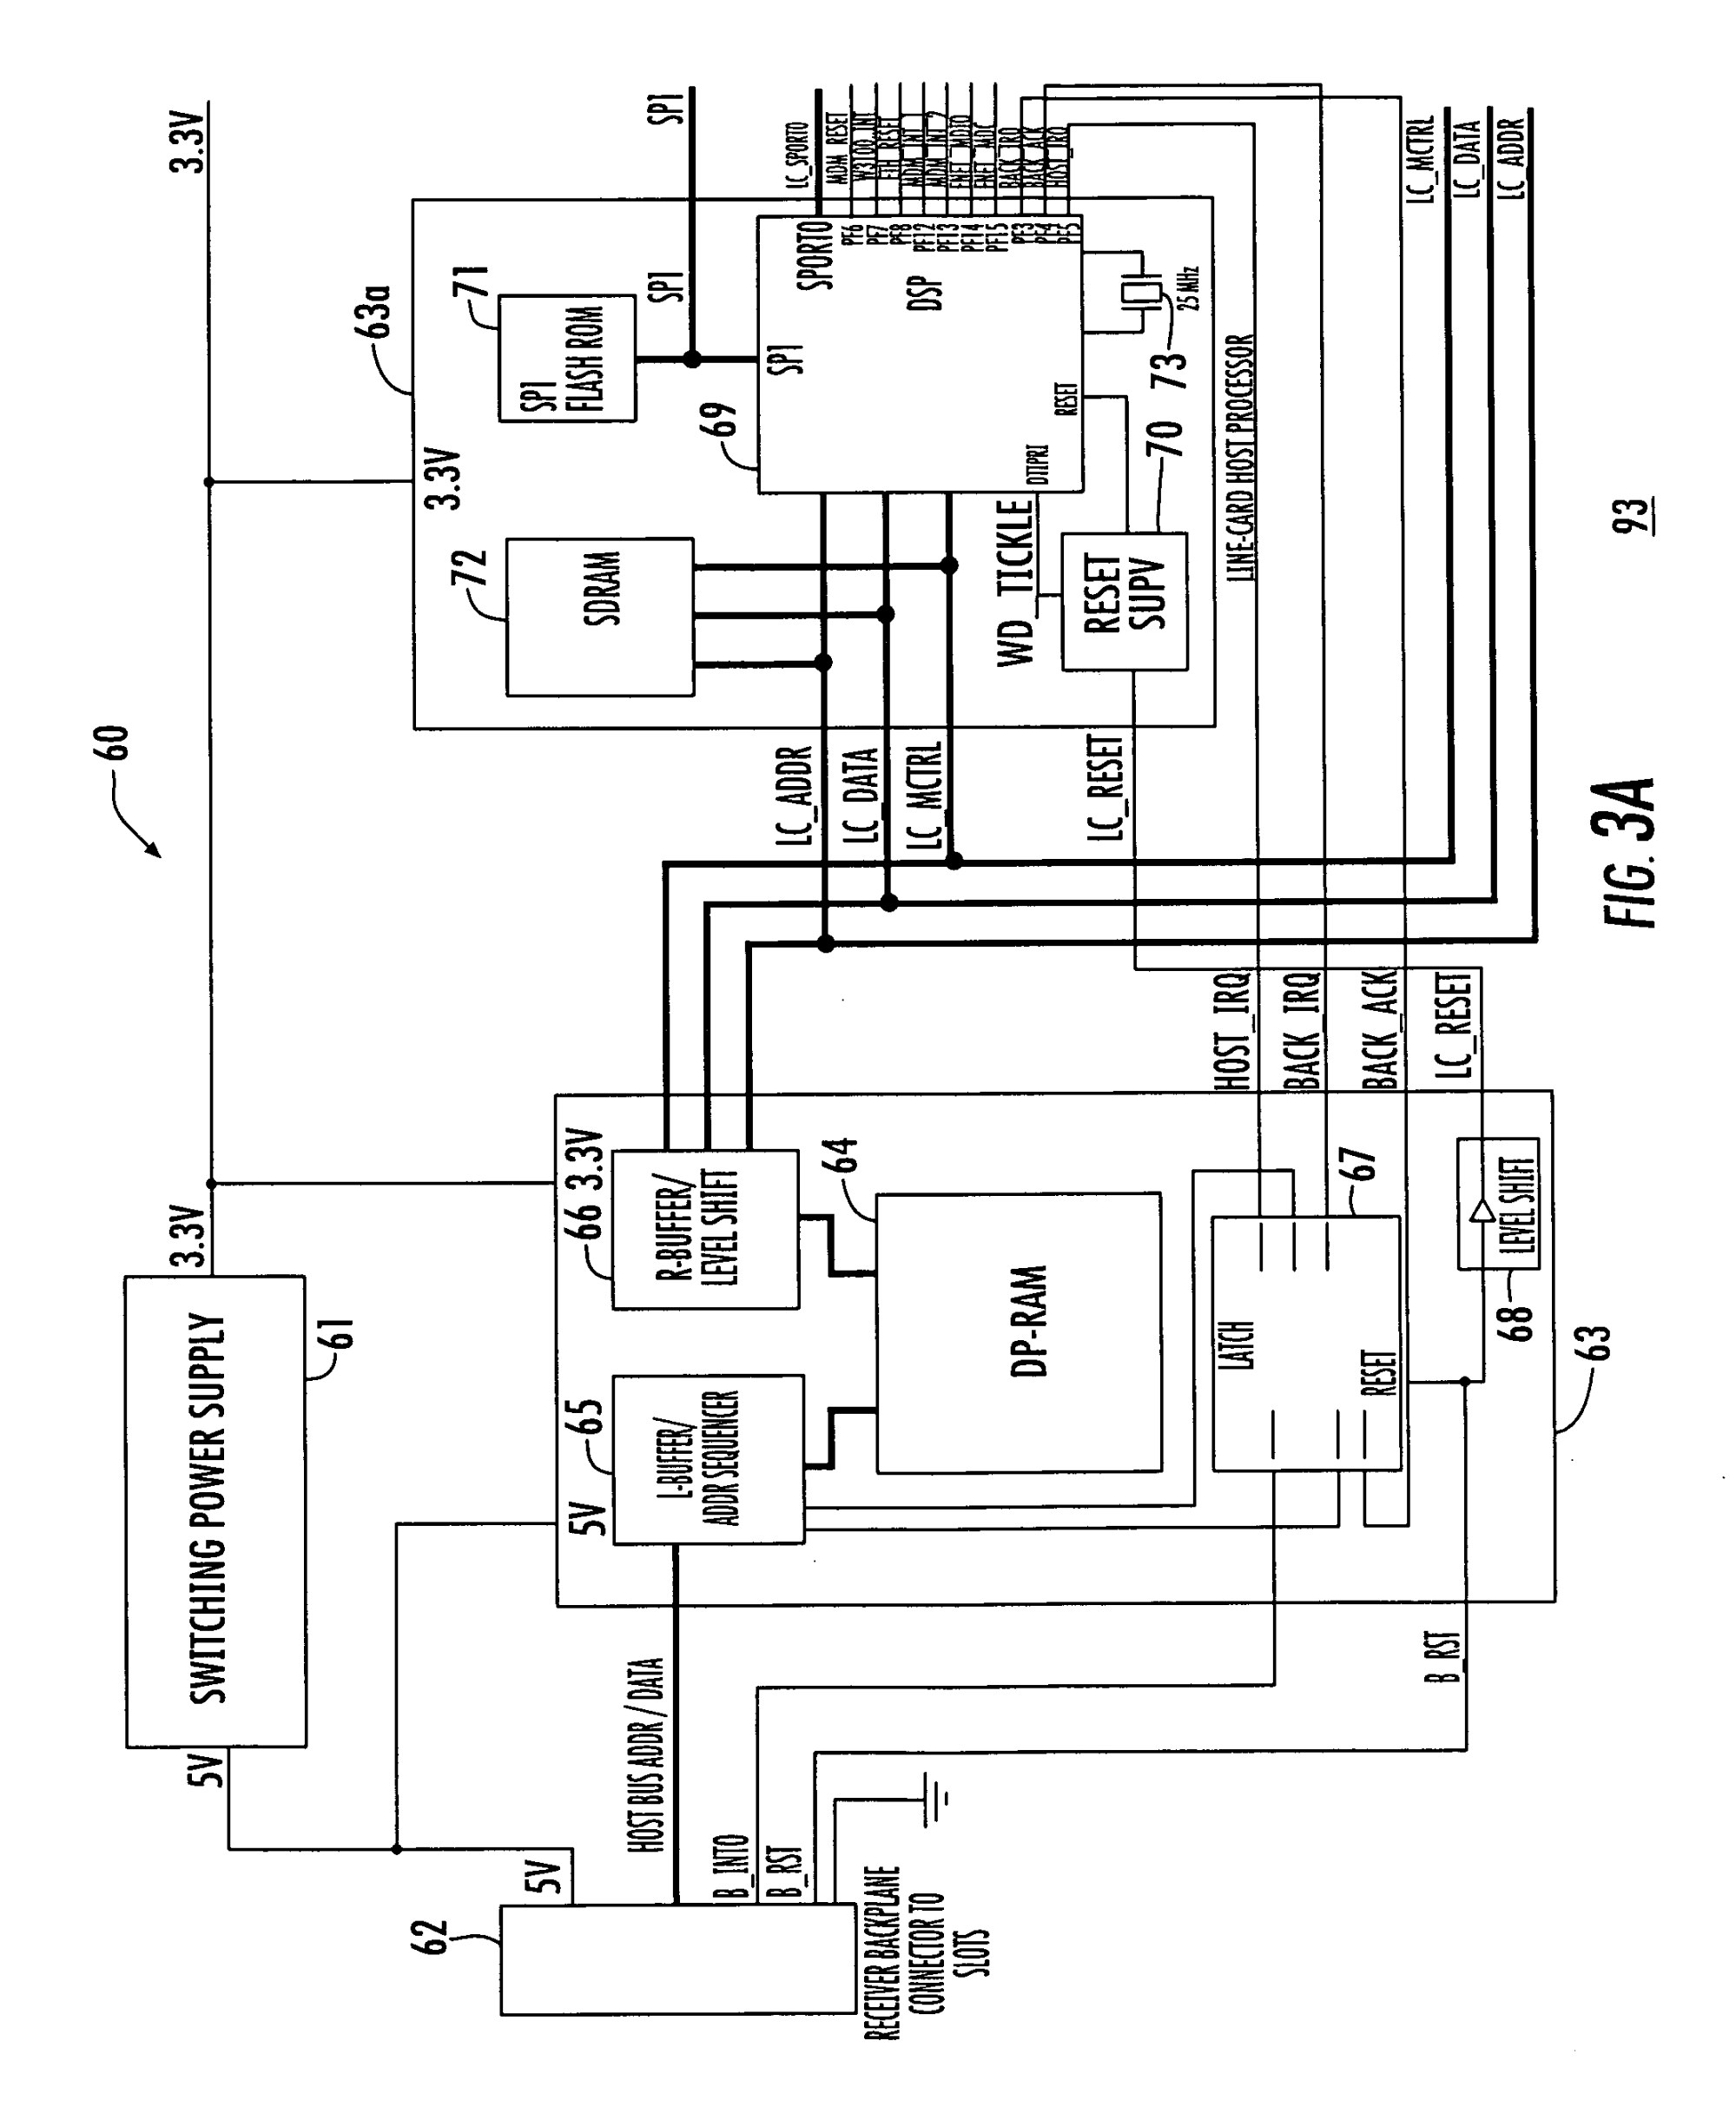 hight resolution of duct smoke detector wiring diagram download smoke detector wiring diagram lovely fortable fire alarm circuit download wiring diagram